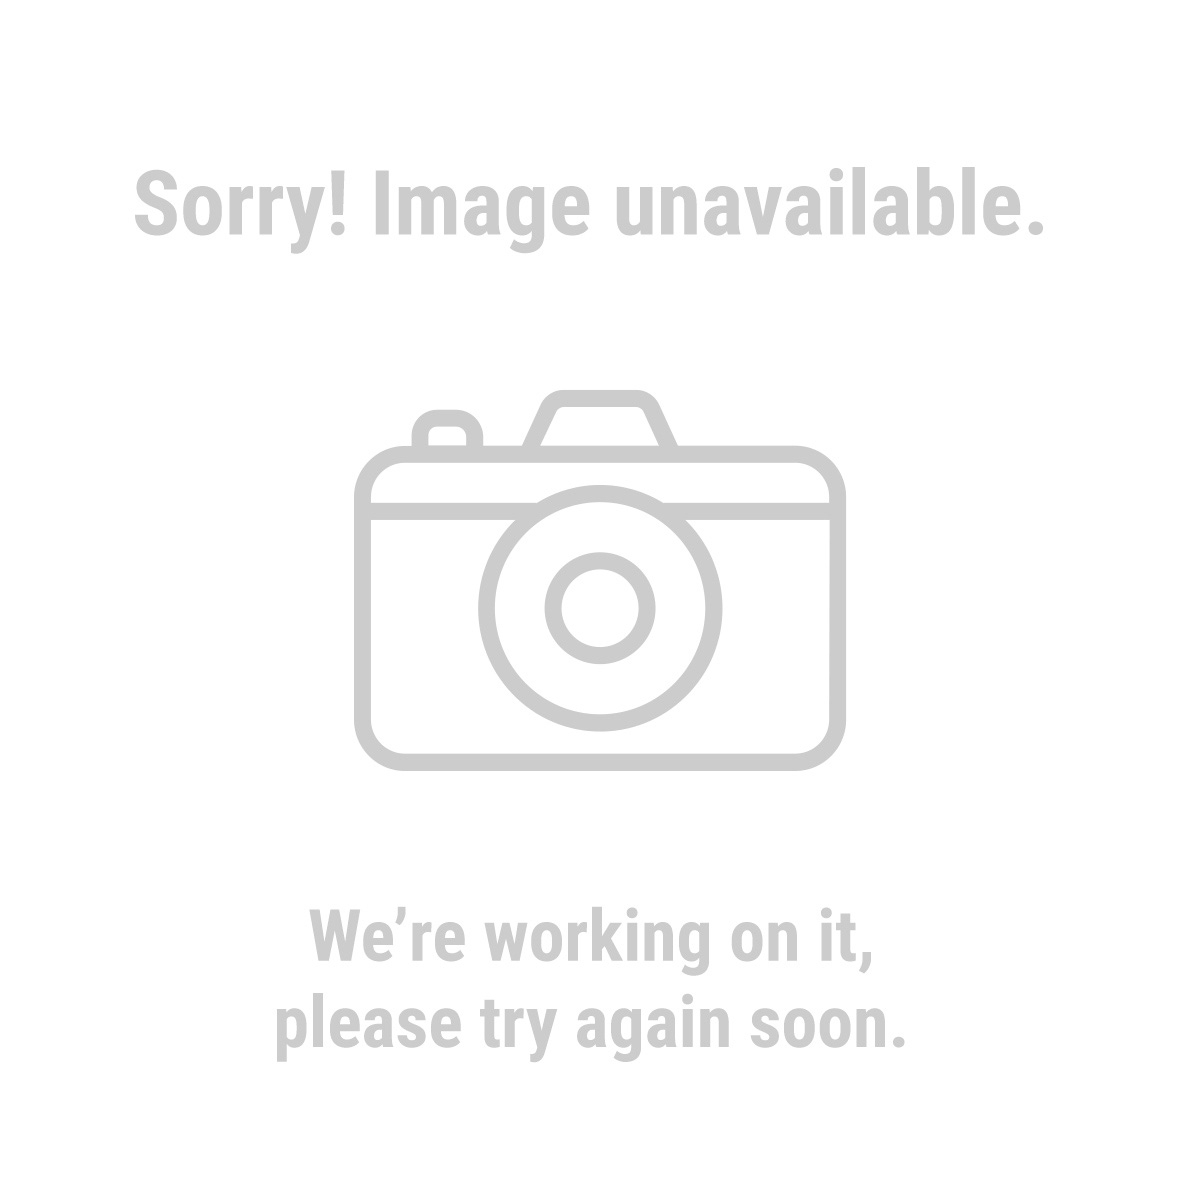 Chicago Electric Power Tools 63117 10 in., 13 Amp Benchtop Table Saw